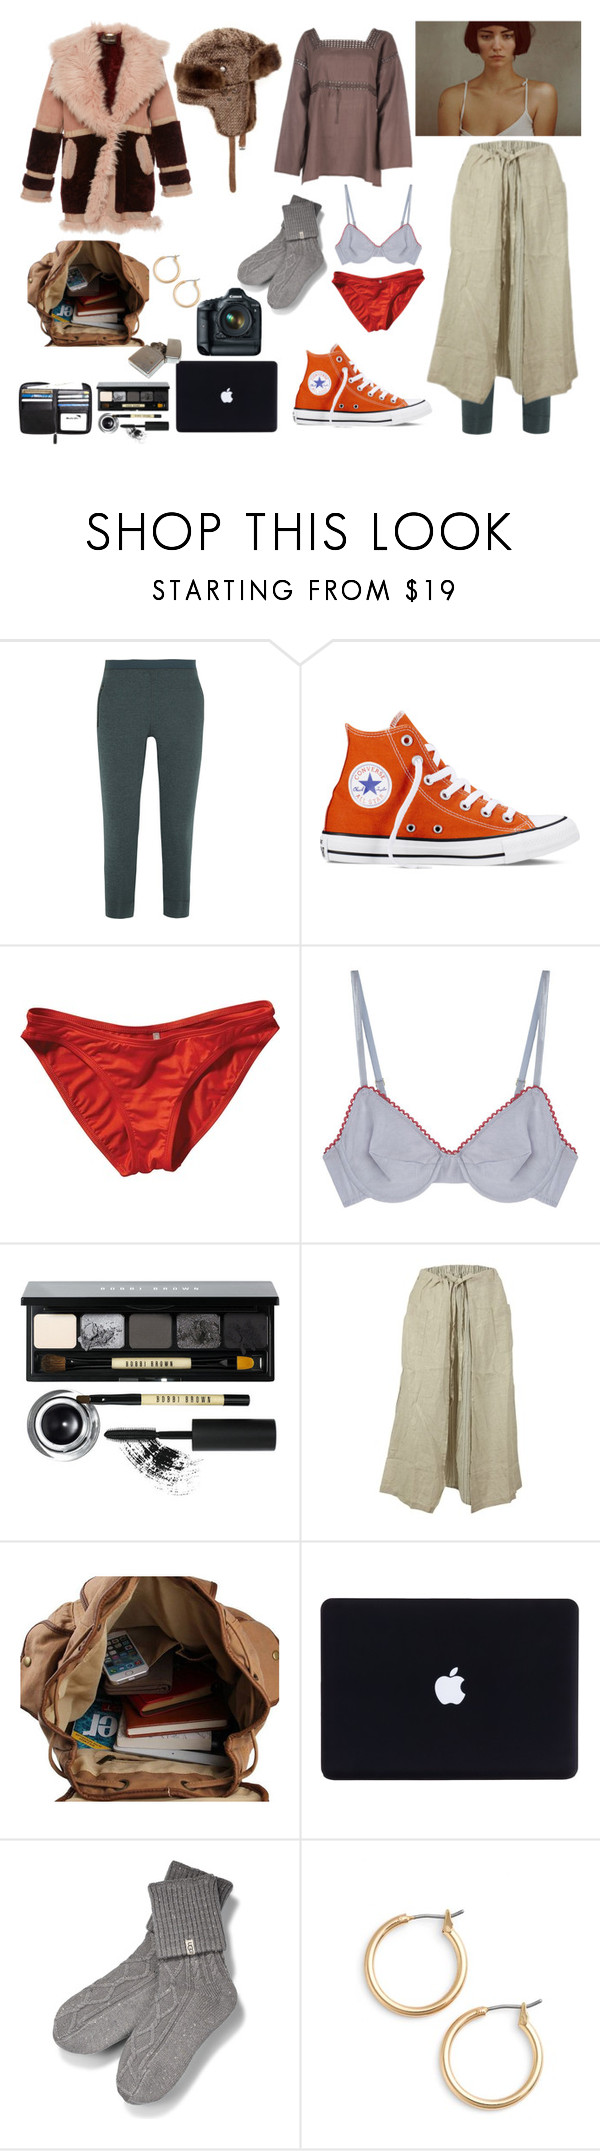 """""""go"""" by harttm ❤ liked on Polyvore featuring Theory+, Converse, Patagonia, Araks, Bobbi Brown Cosmetics, Lazybones, Eos, UGG, Nordstrom and Matiere"""